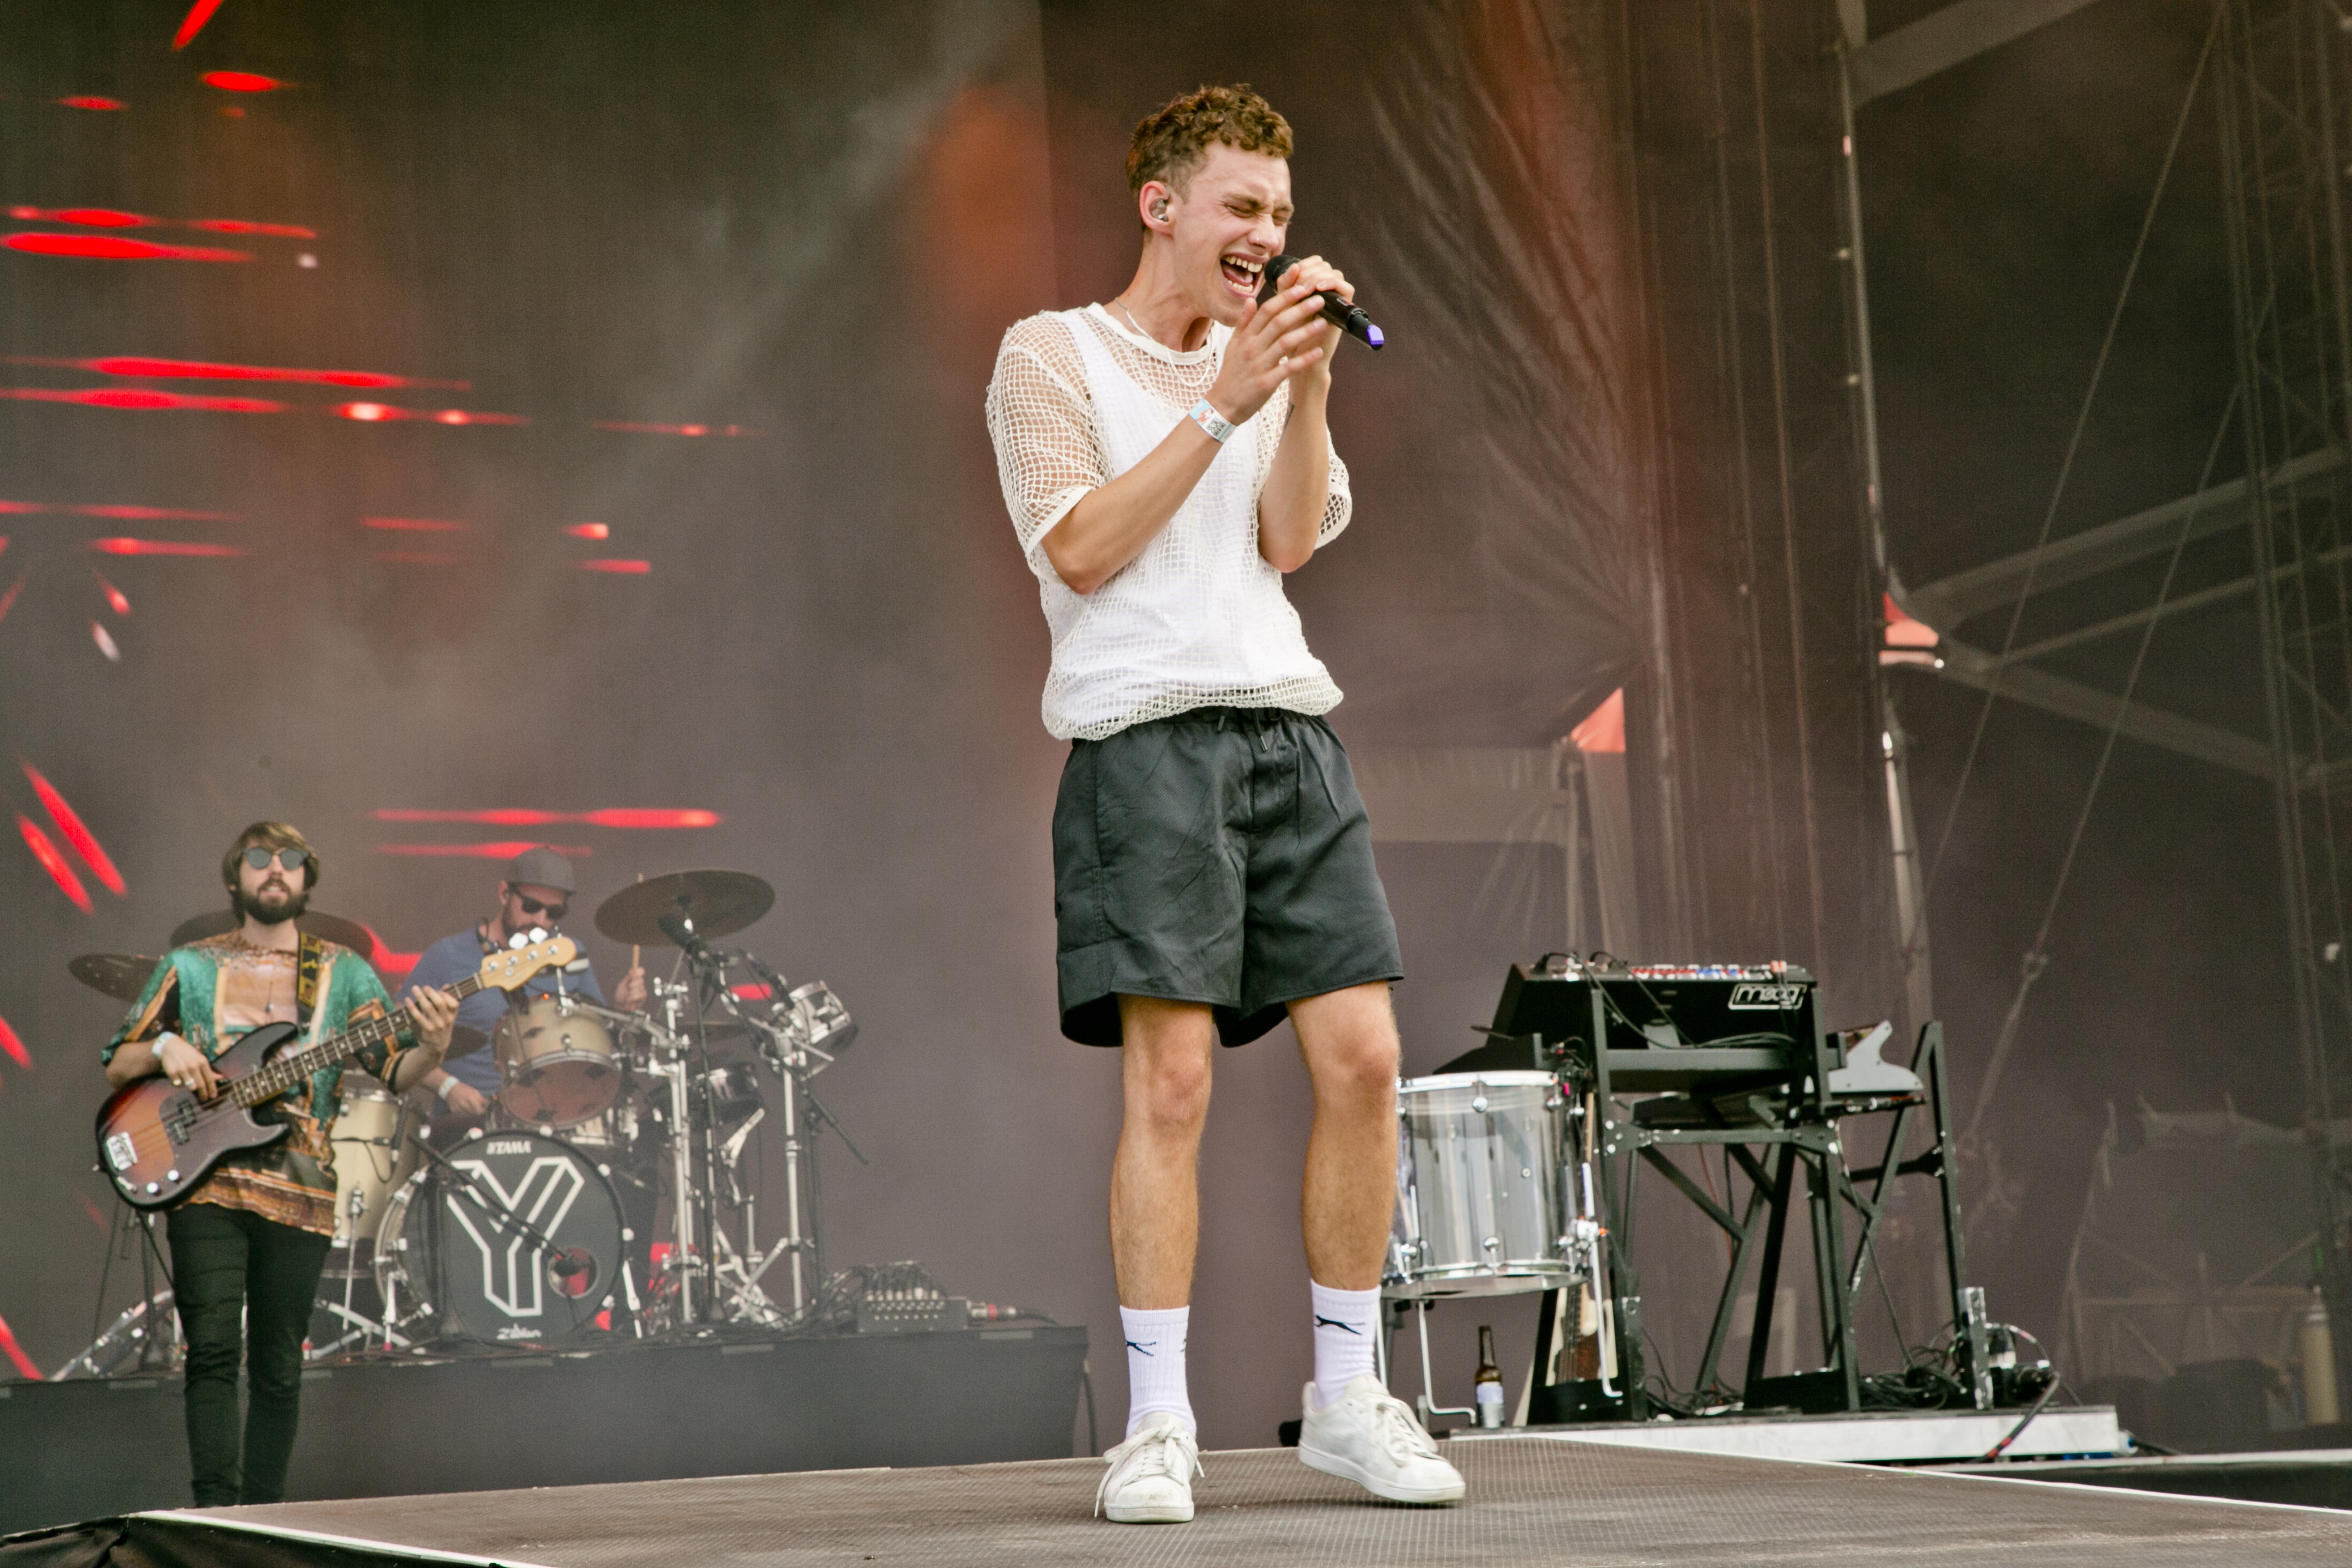 Years & Years at Sziget Festival, Budapest, Hungary - 15 August 2016